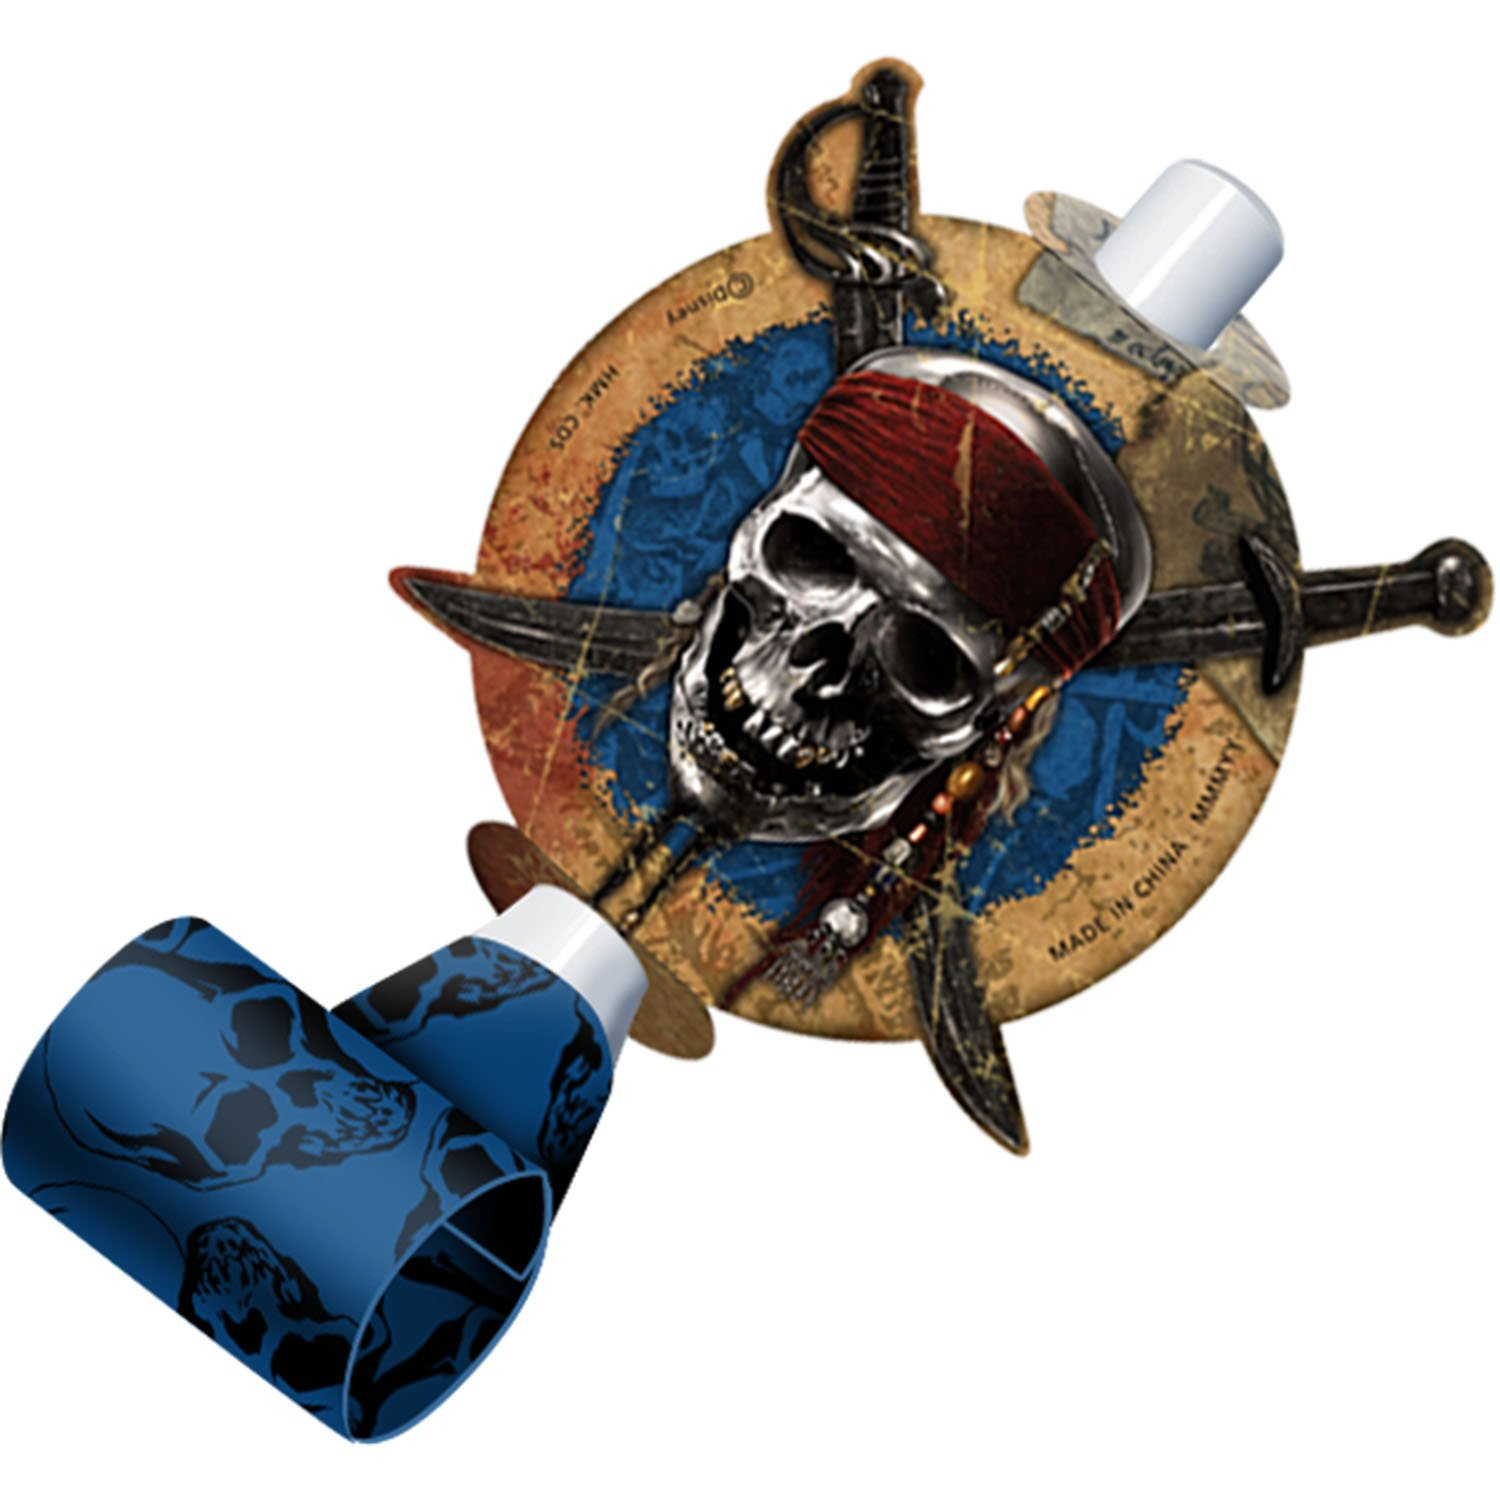 8ct Pirates of the Caribbean On Stranger Tides Party Blowouts Favors